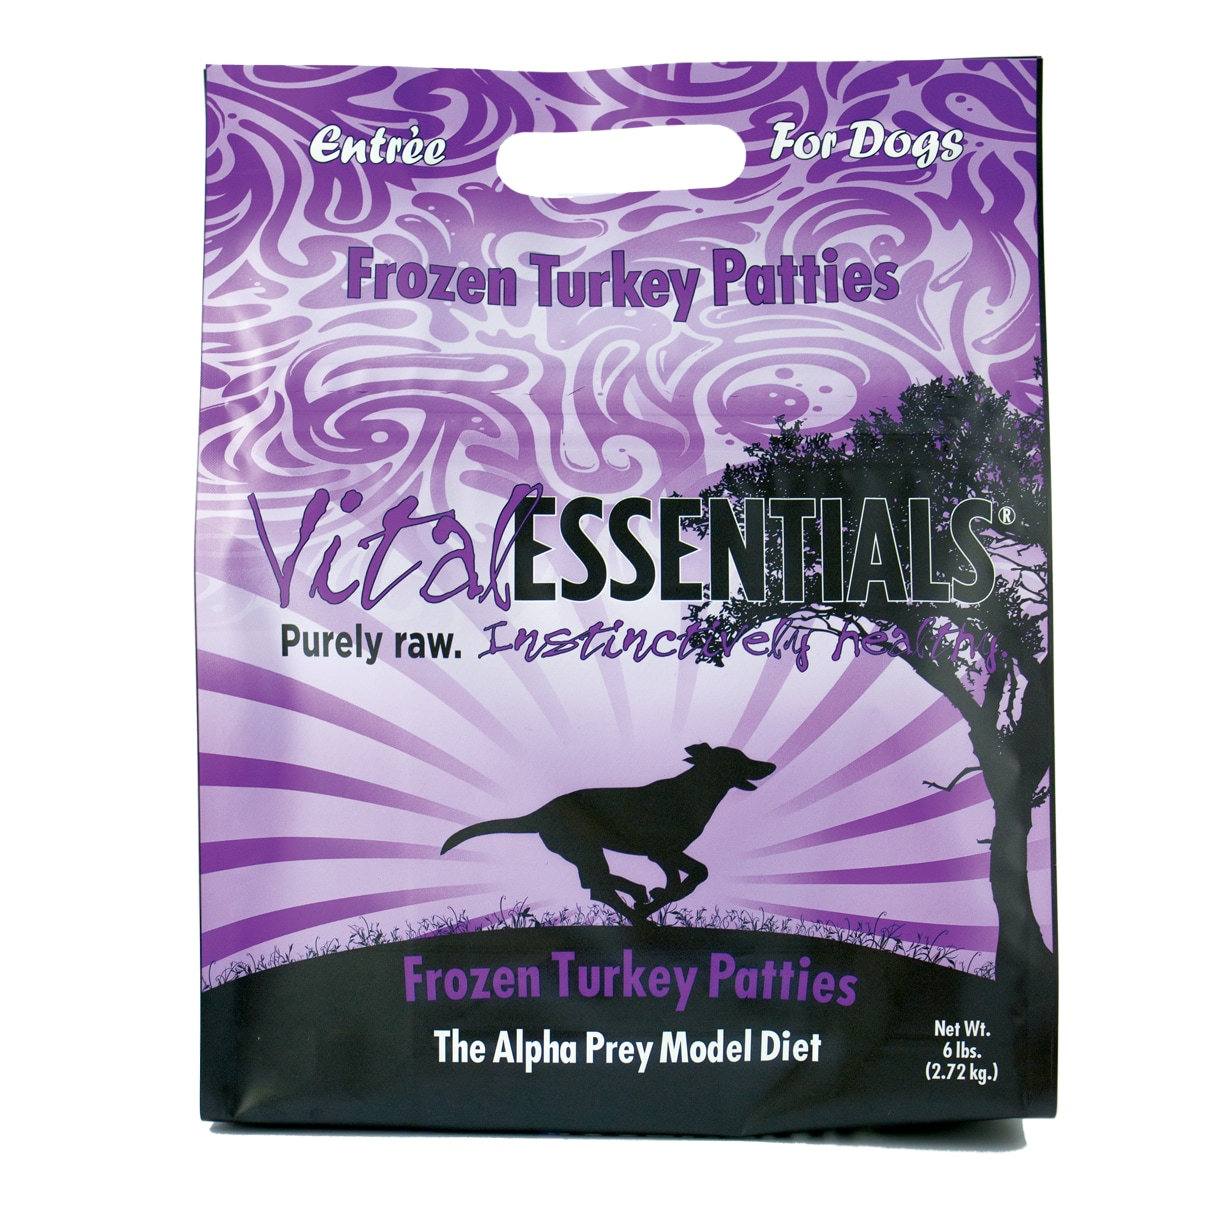 Vital Essentials Turkey Frozen 8z Patties Entrée 6lbs